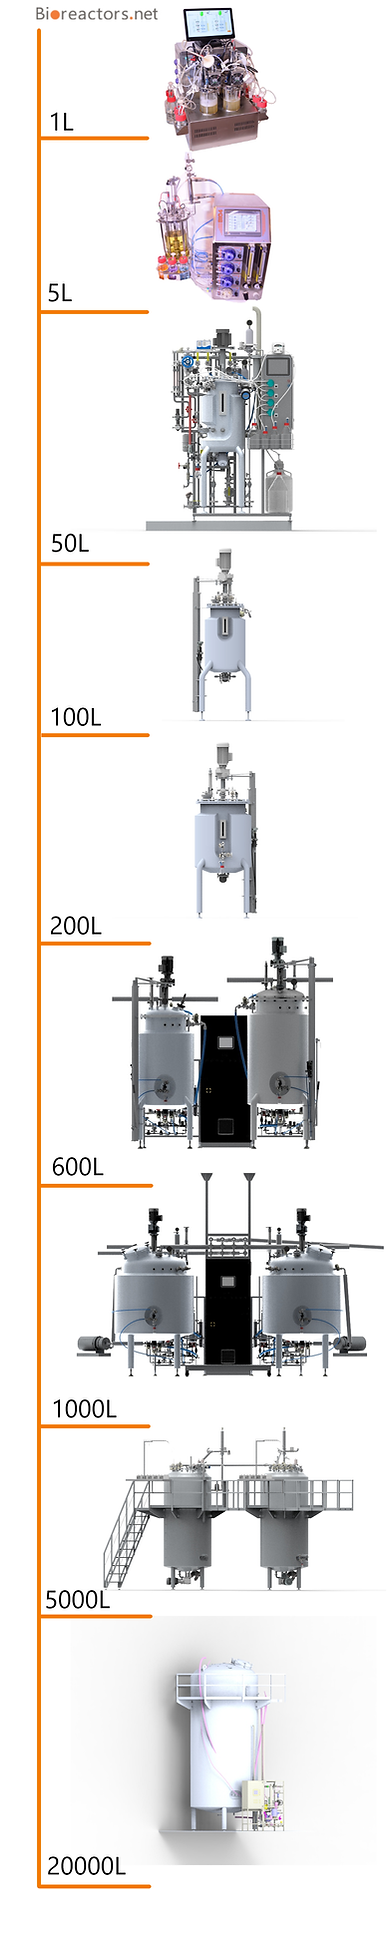 bioreactors.net vessel Line-up.png